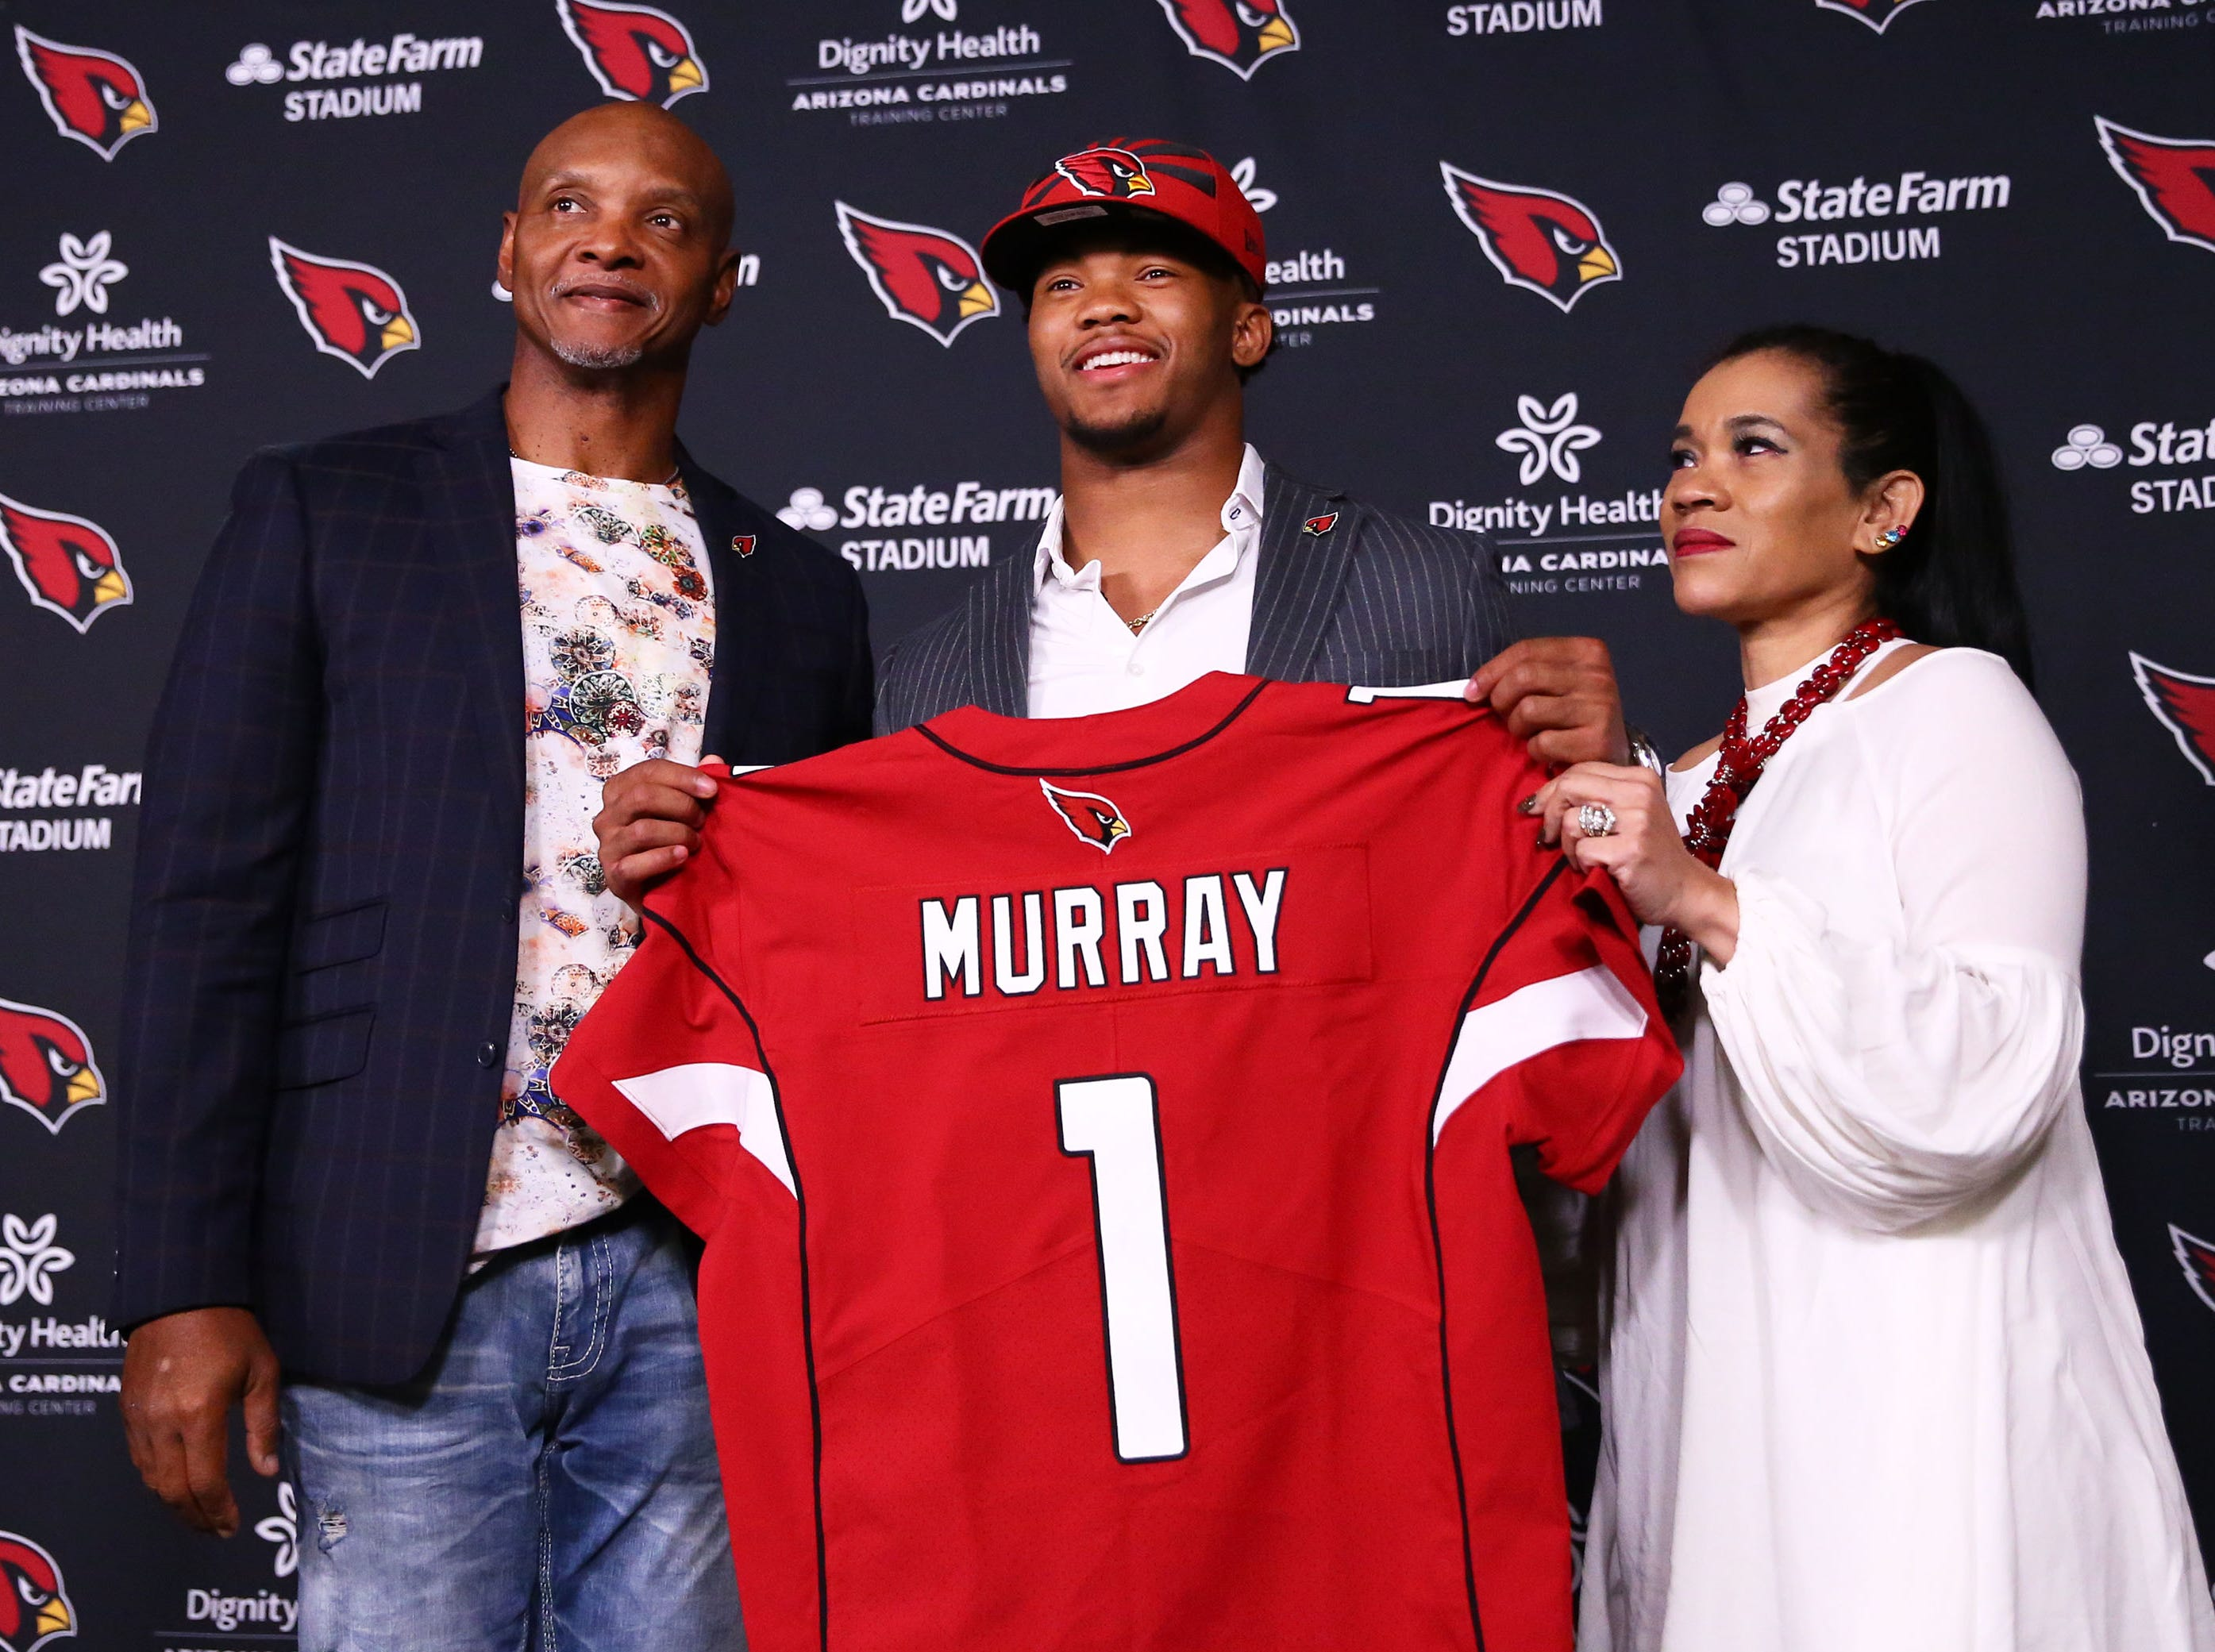 Cardinals first-round draft pick Kyler Murray poses with his parents Kevin and Missy Murray during a news conference on April 26.